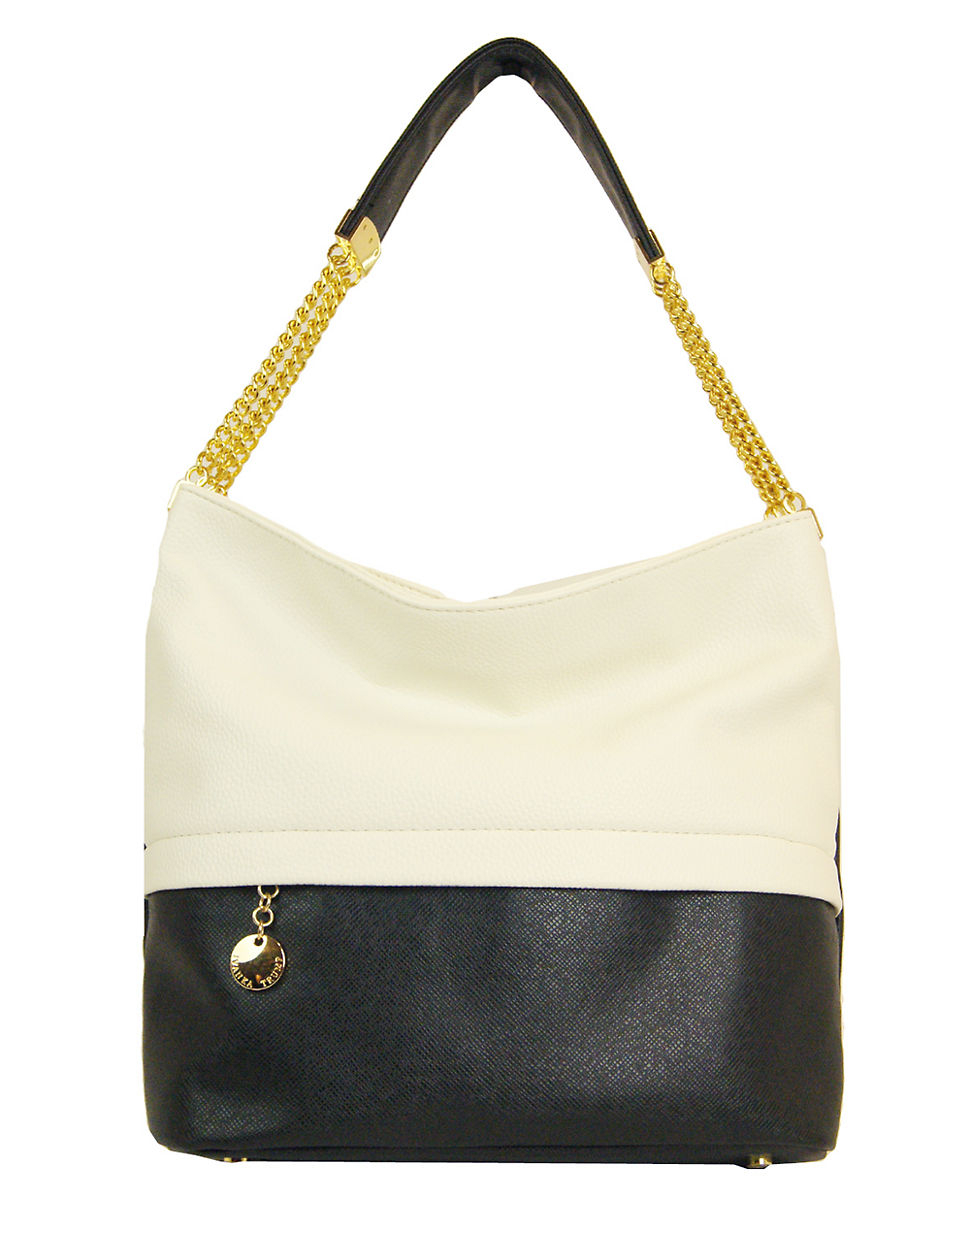 76d3c2d2ddf4 Ivanka Trump Vivian Faux Leather Colorblock Hobo Bag in .